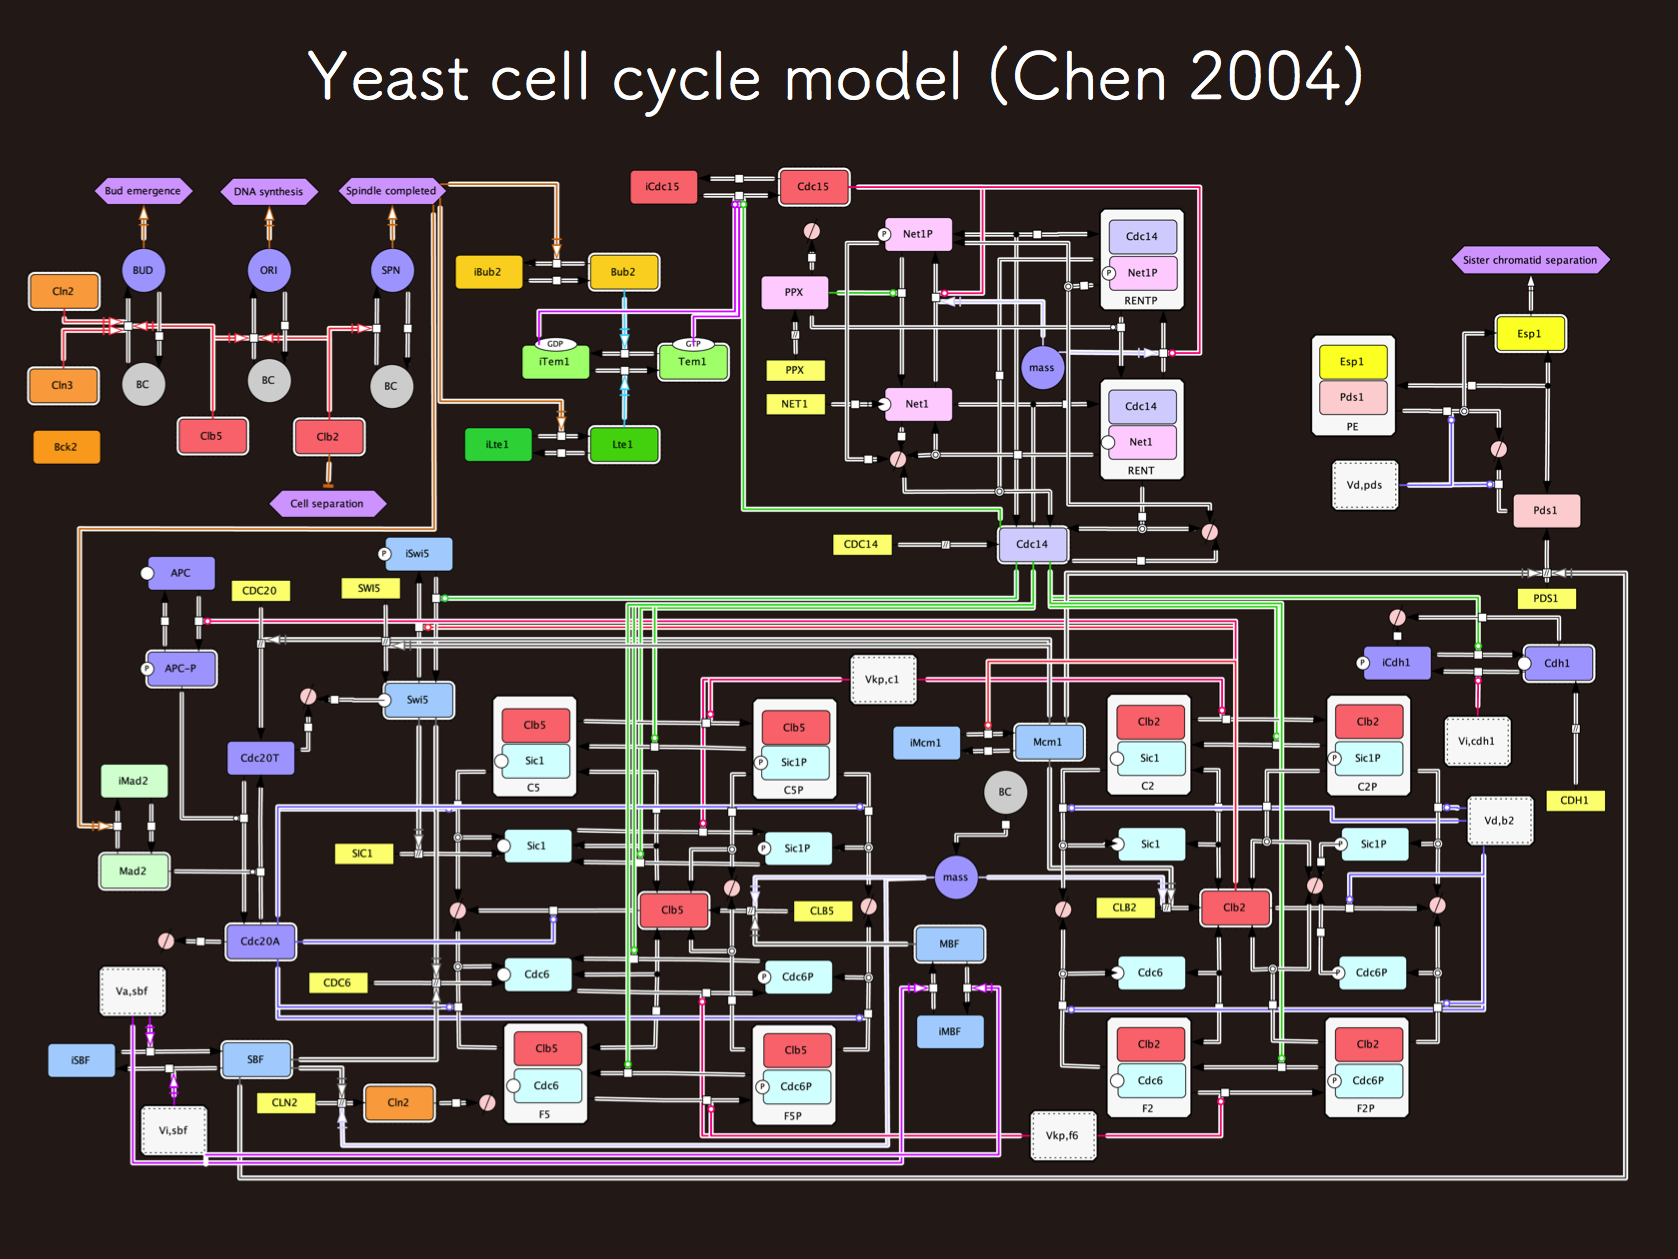 Budding yeast cell cycle model